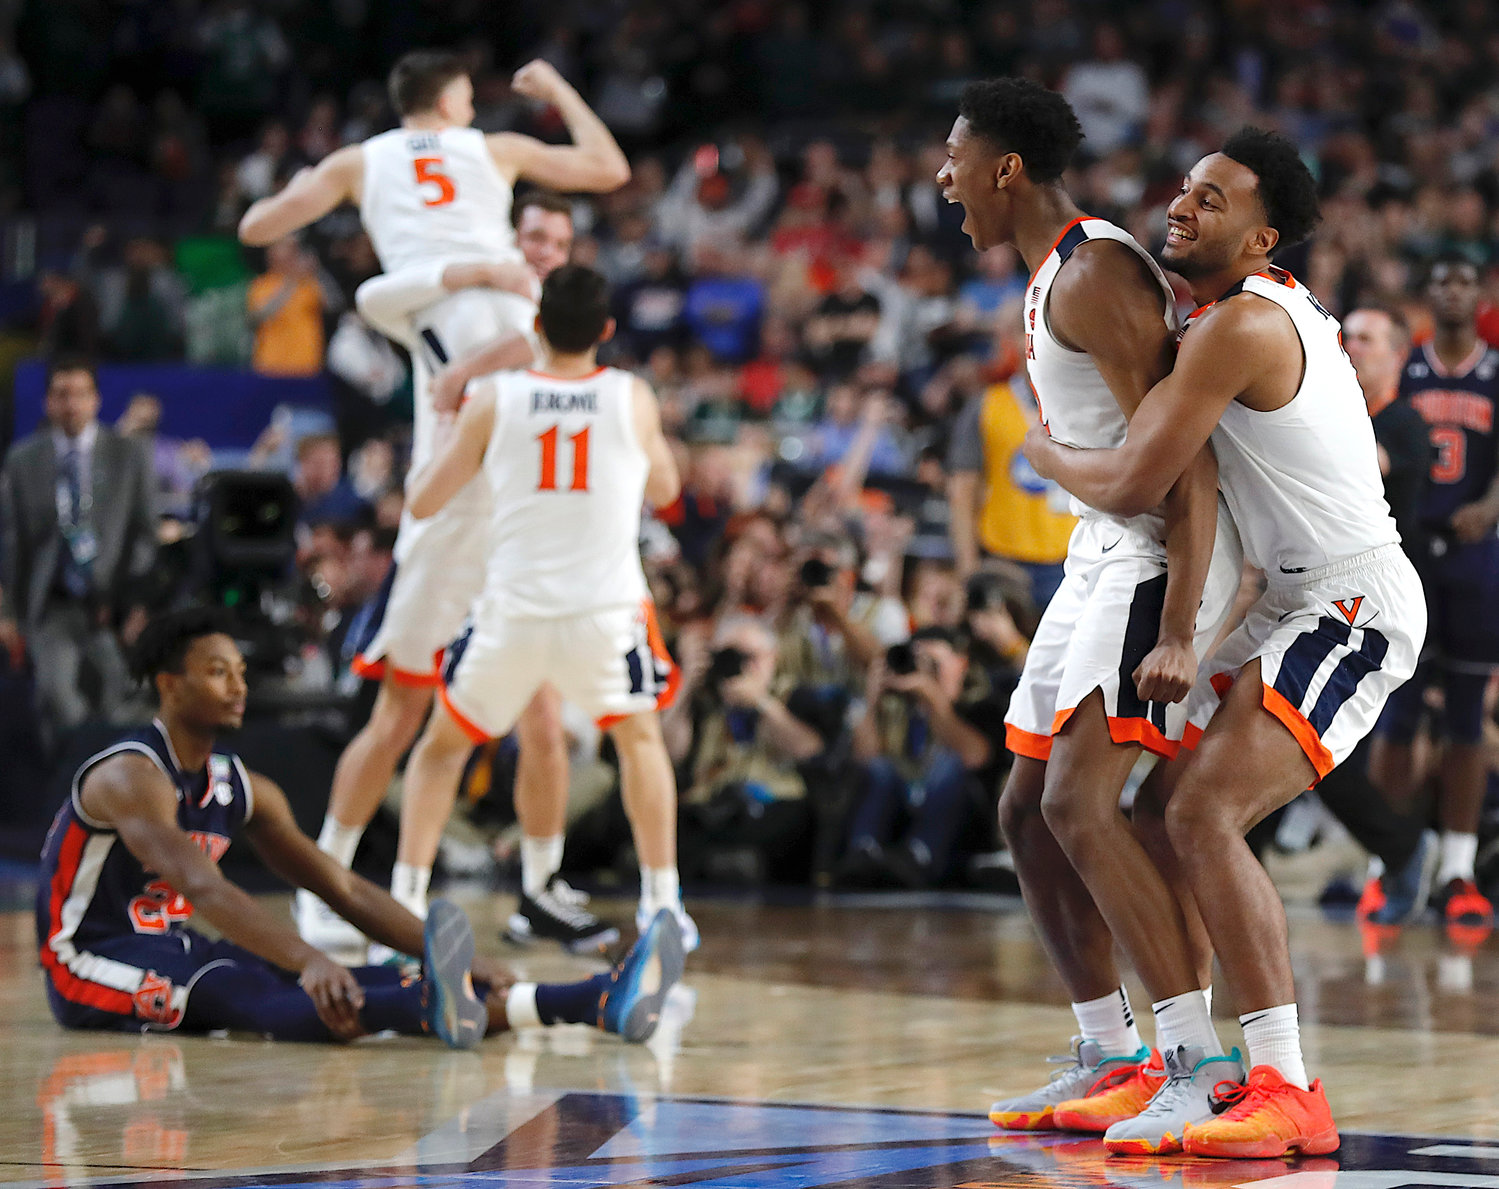 Final Four Guy Sinks Fts On Disputed Foul Virginia Shocks